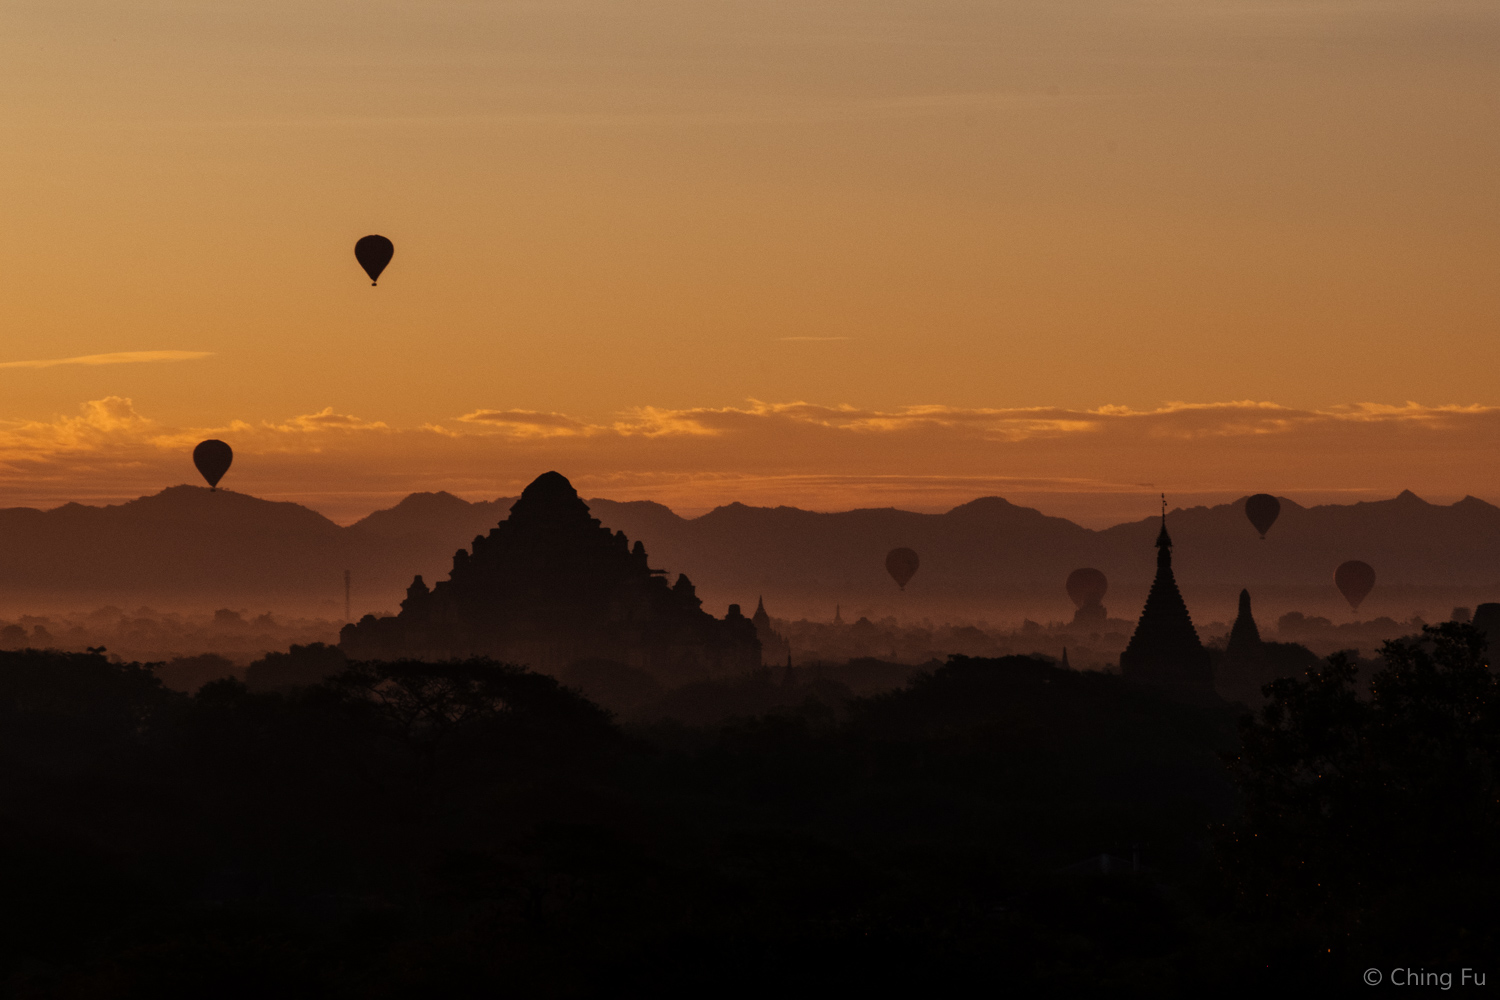 Sunrise and hot air balloons over Dhammayangyi Temple.